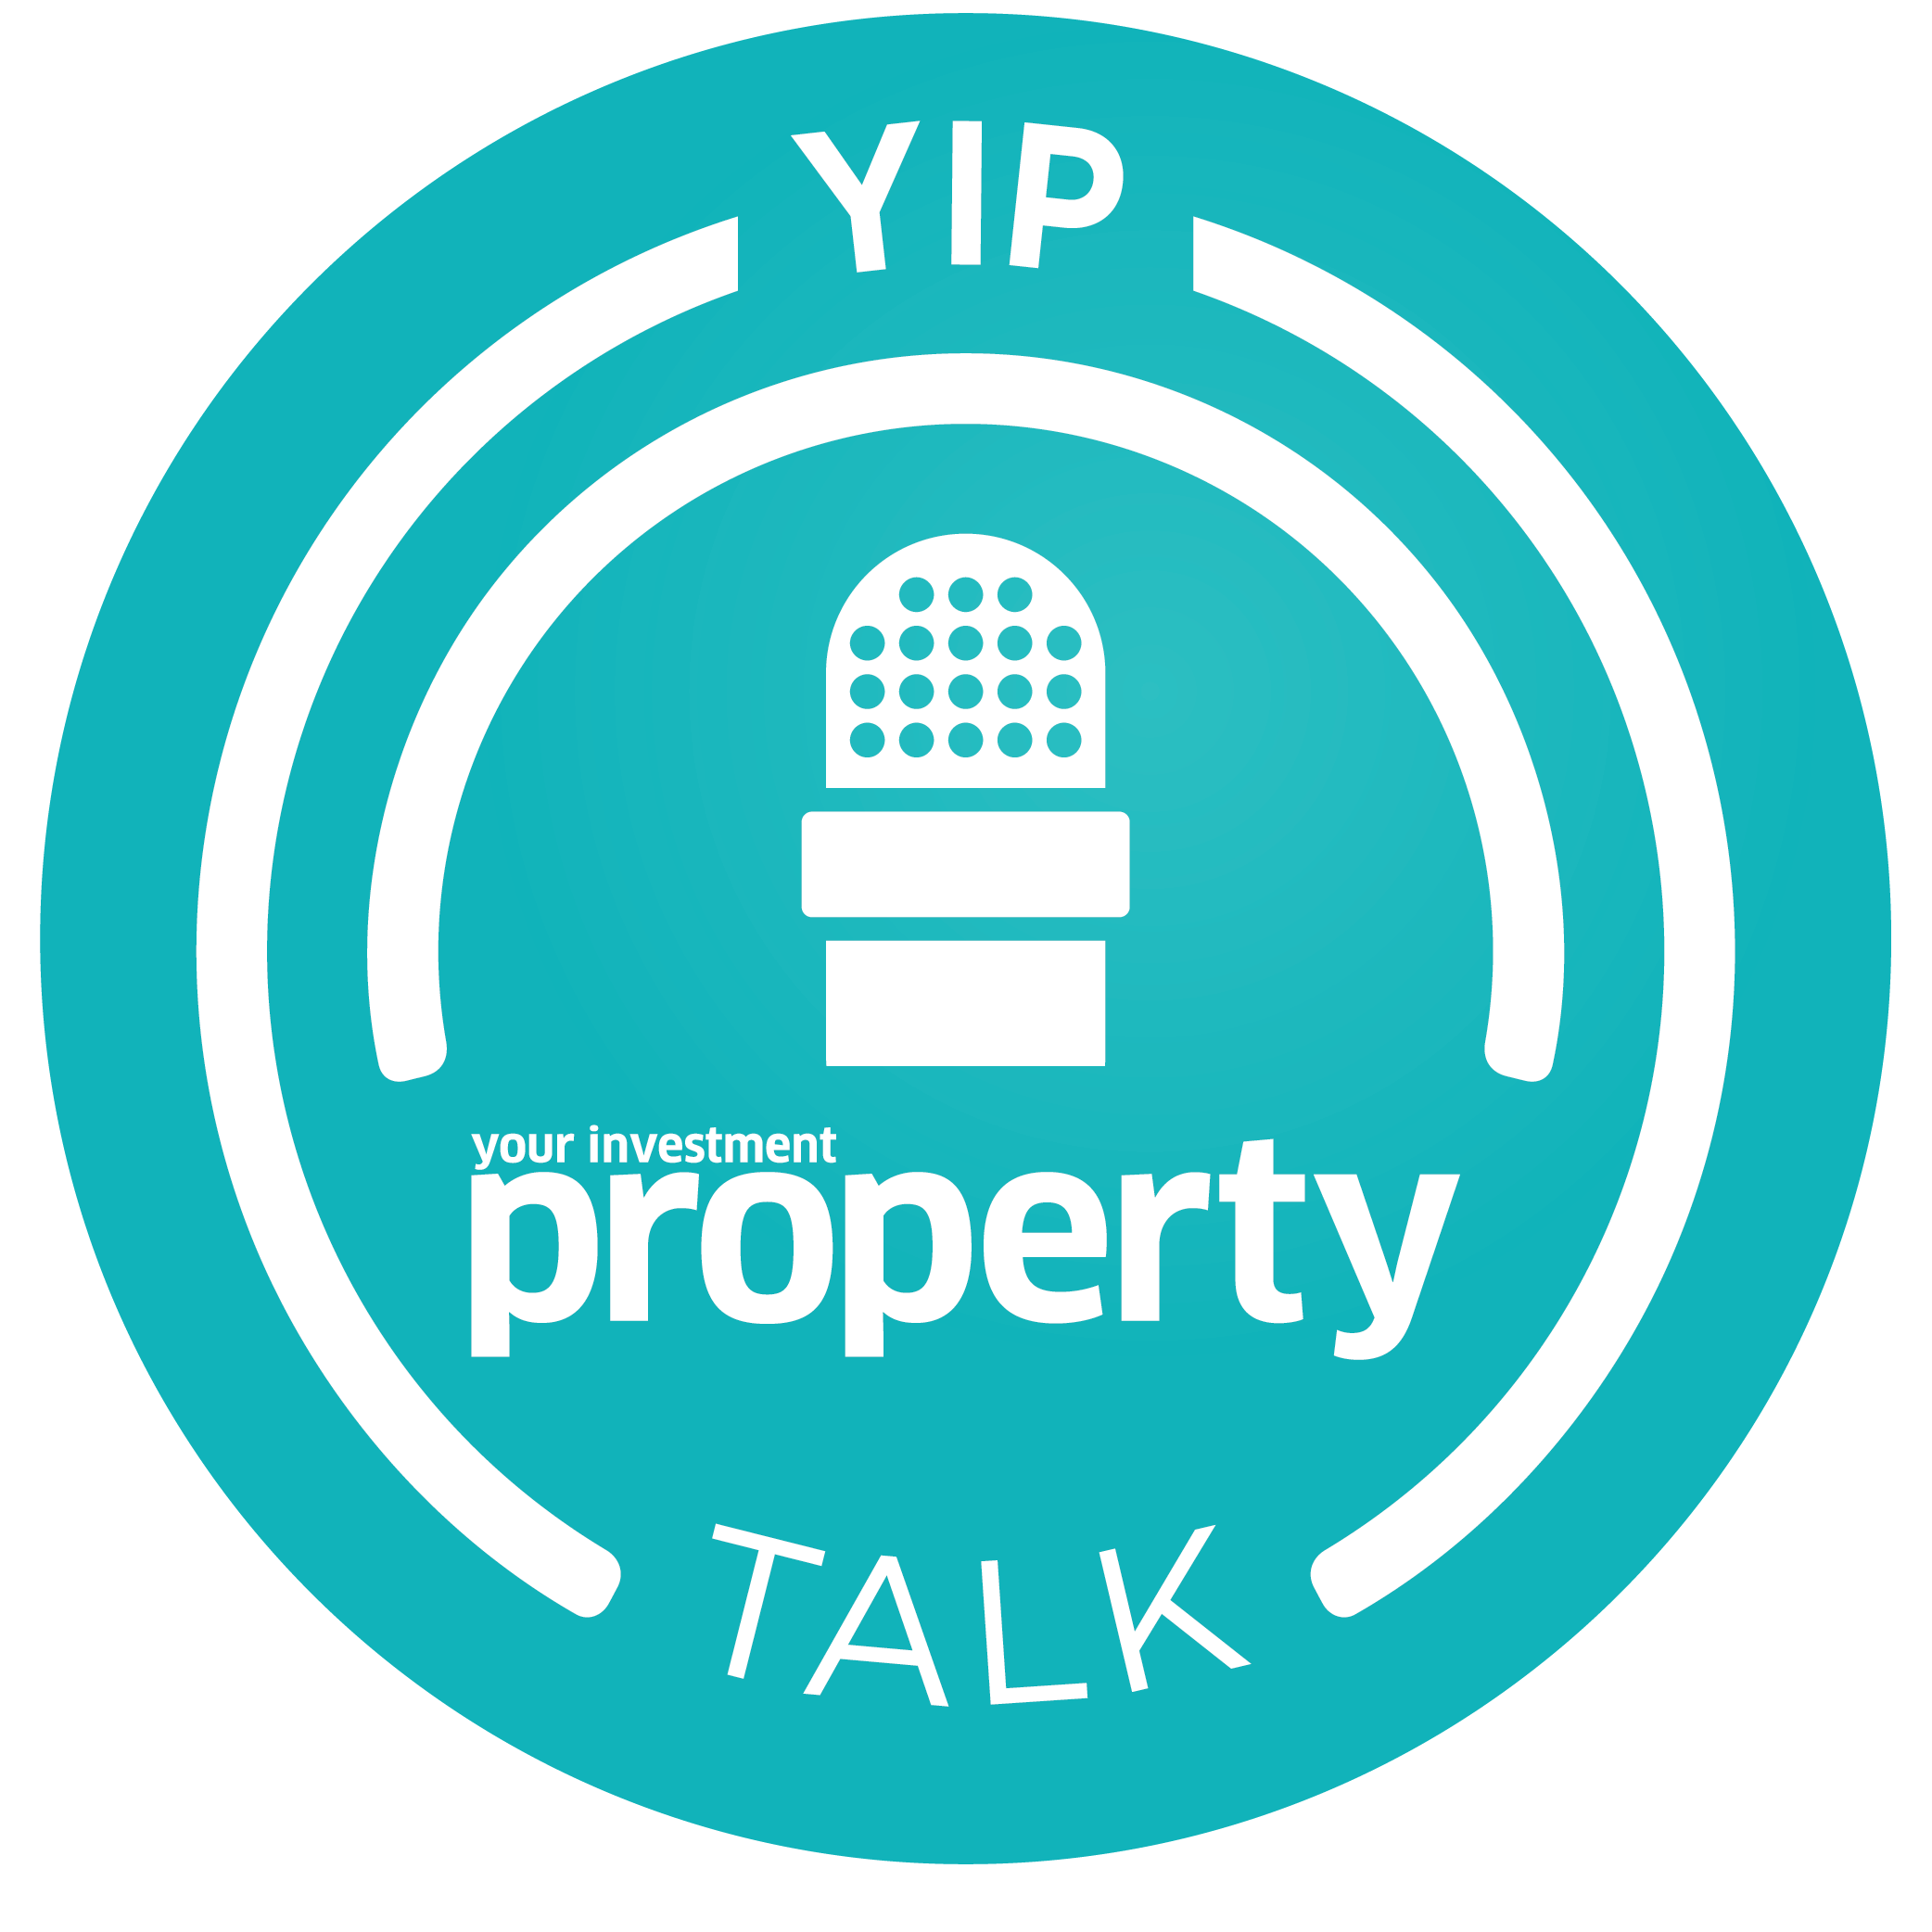 Episode 12 - January 2019 - Myth-busting commercial property misconceptions for investors